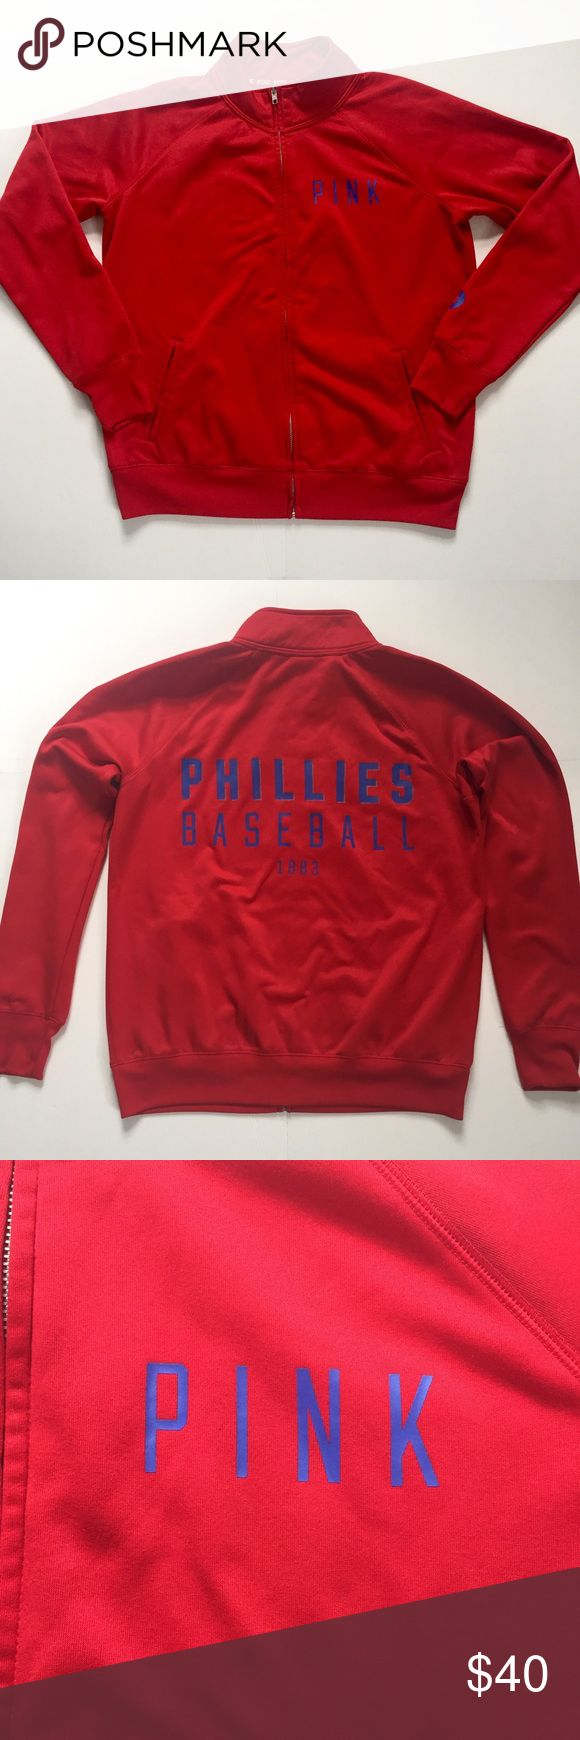 """VS PINK Philadelphia Phillies Baseball Jacket Show your team spirit while keeping warm at Citizens Bank Park in this Phillies jacket. Track style jacket. Zipper front with 2-pockets. The front has 'PINK' on the left hand-side and the Phillies 'P' on each Sleeve. The back has 'Phillies Baseball 1883'. Length is approximately 25 1/2""""; chest (underarm to underarm) is approximately 23"""". In good, pre-owned condition showing normal signs of wear. ❌NO TRADES❌NO PAYPAL❌ PINK Victoria's Secret…"""